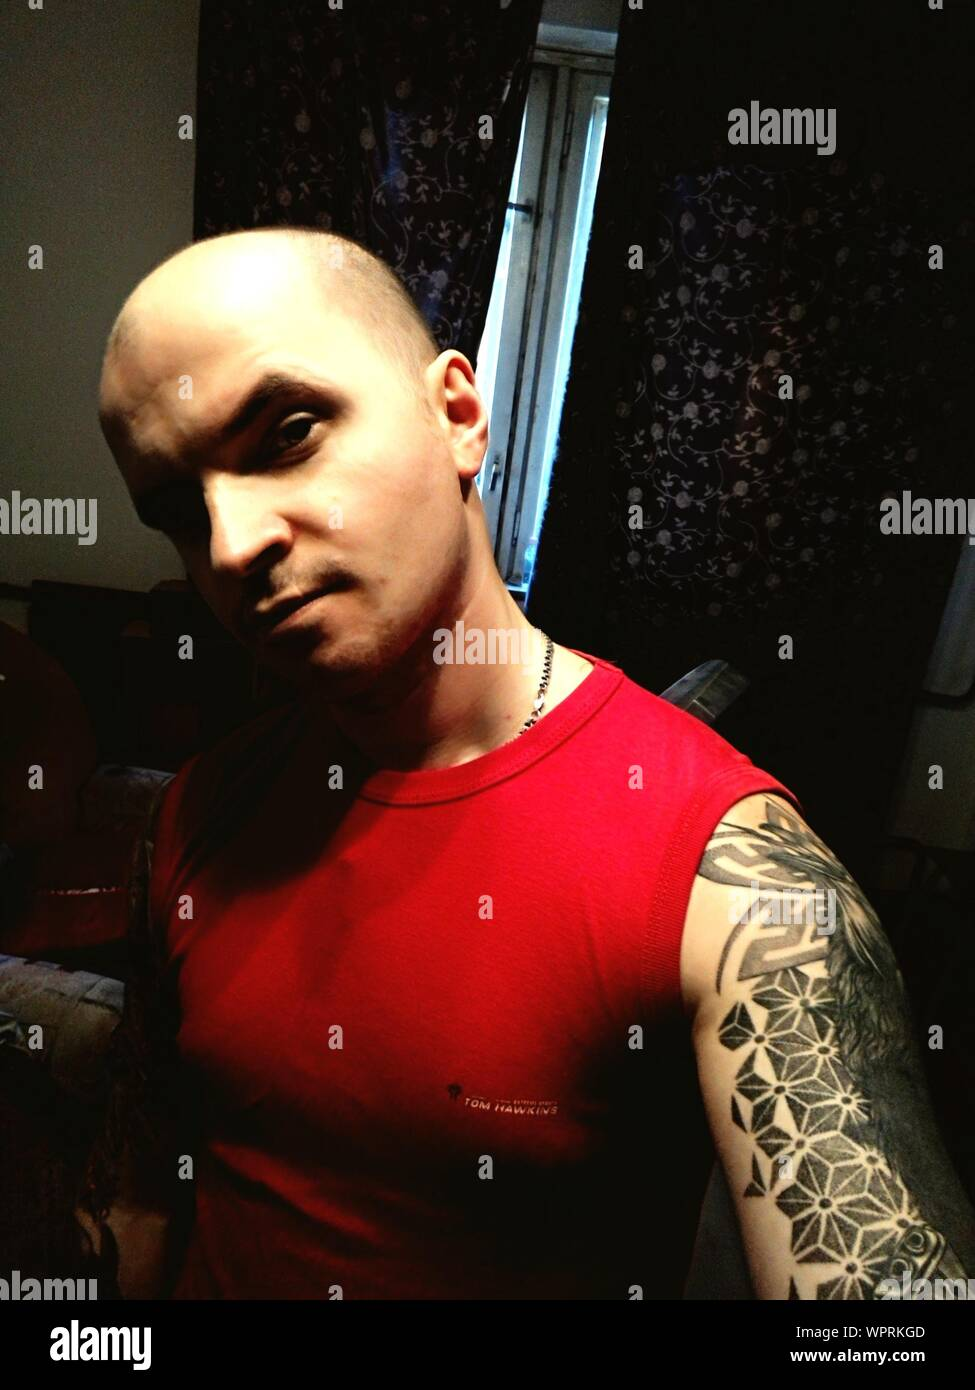 Men with tattoos bald 5 reasons